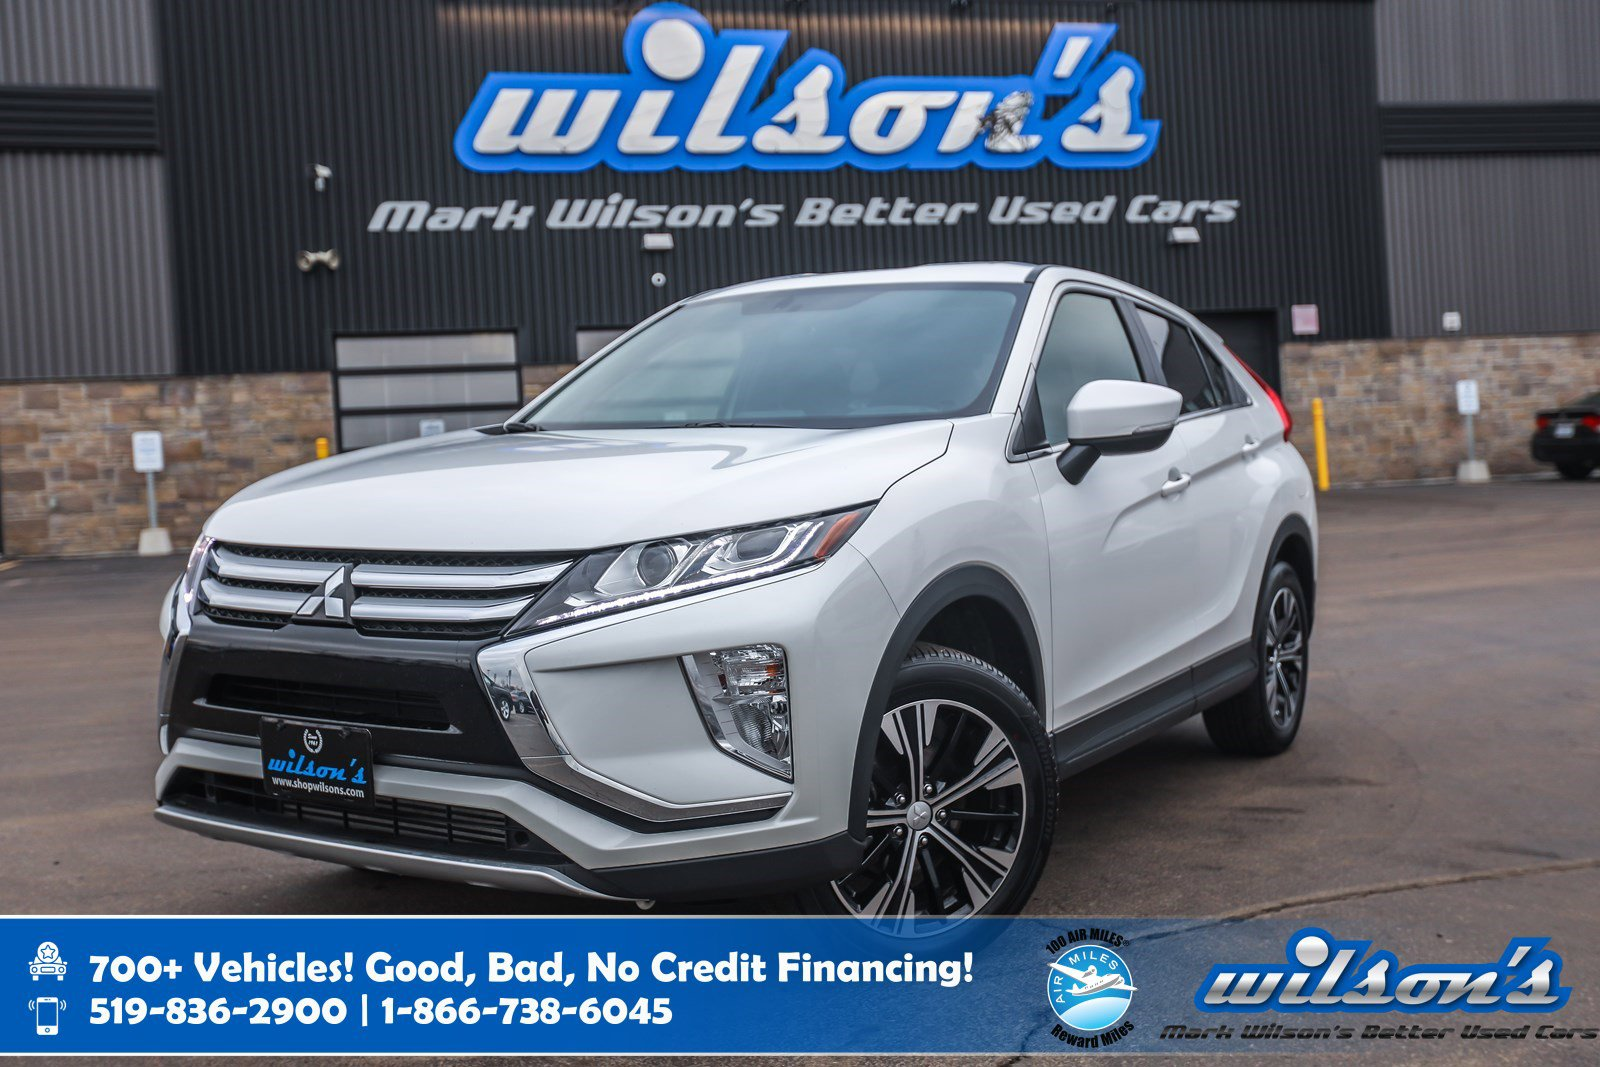 Certified Pre-Owned 2019 Mitsubishi Eclipse Cross SE AWD, Blind Spot Warning, Dual Zone Auto Climate, Heated Seats, Bluetooth and more!